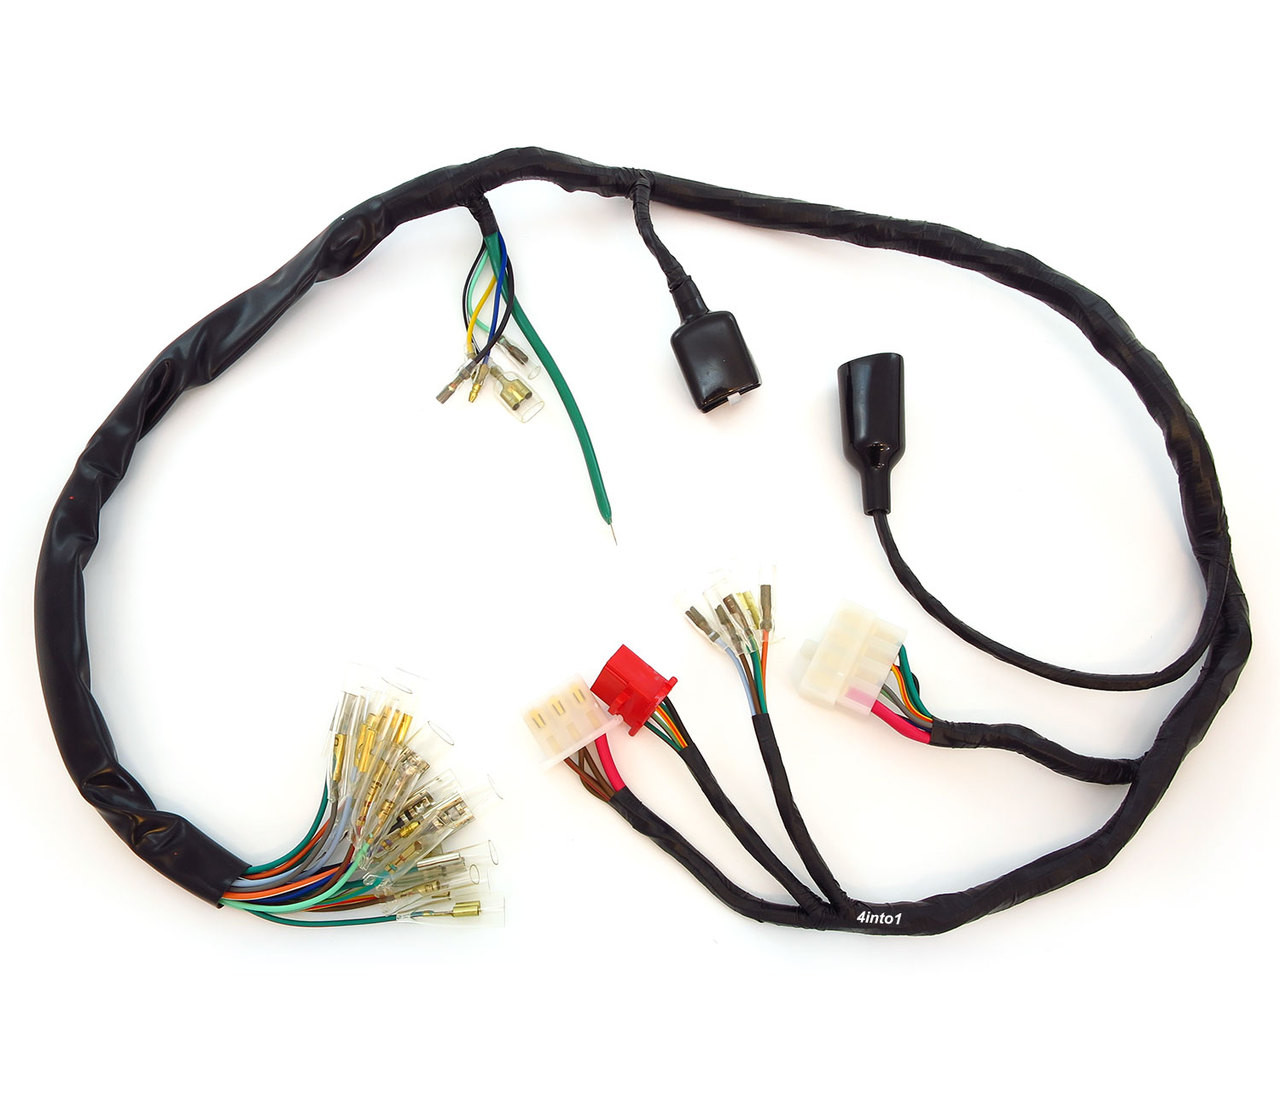 Wiring Harness Honda Archive Of Automotive Diagram Crv Main 32100 374 000 Cb550k 1974 1975 Rh 4into1 Com